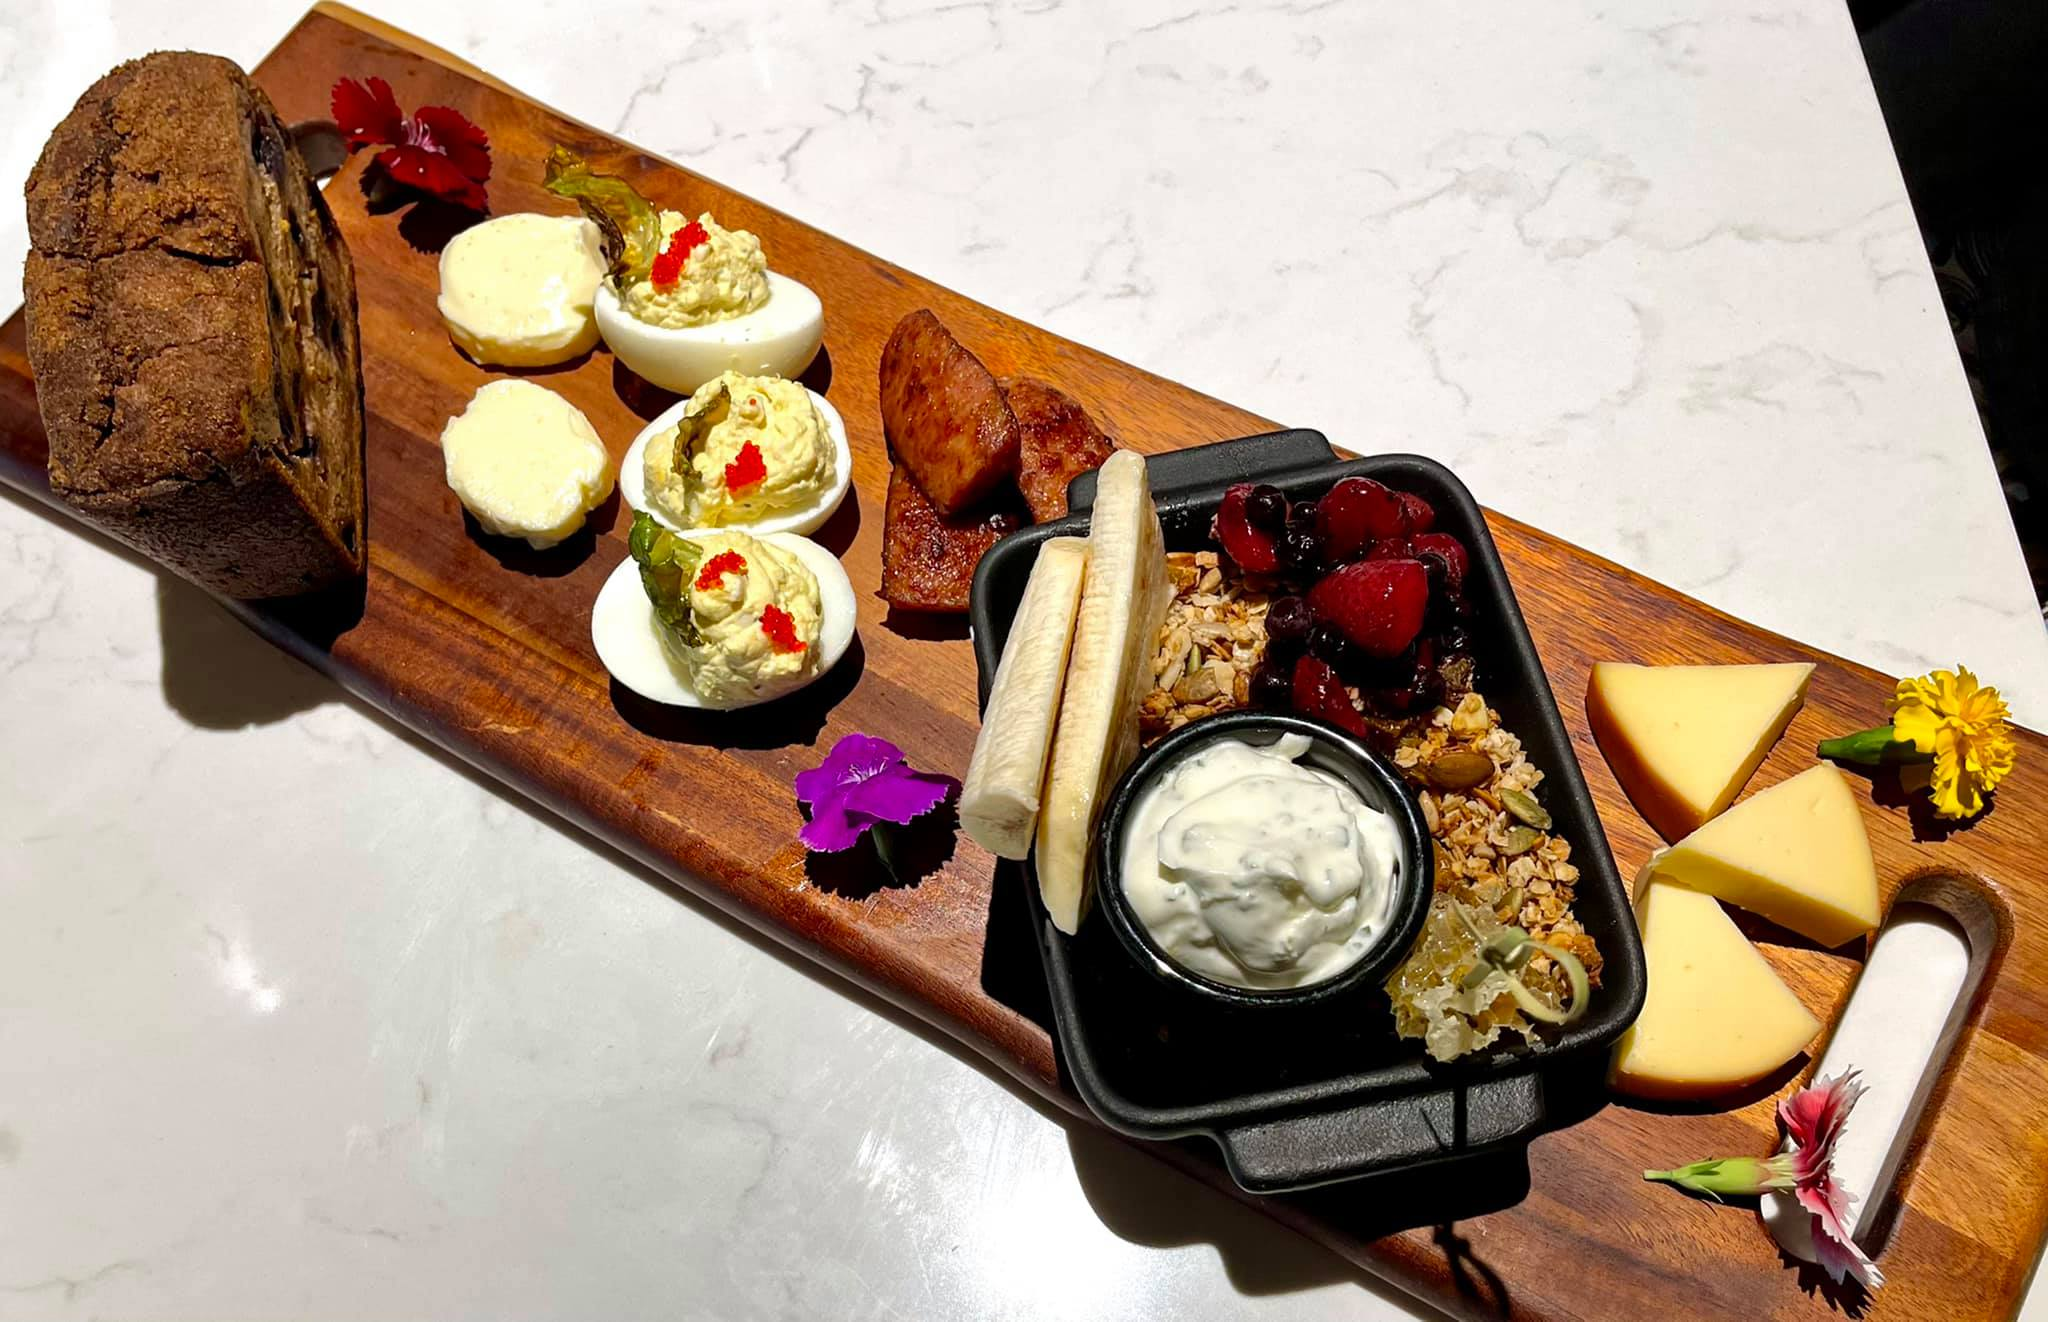 Roost Breakkie Board with Azar Andouille Sausage, Banana-Blueberry Bread, Nut Butter, Granola, Lime Yogurt, Mixed Berries & Banana, Deviled Eggs